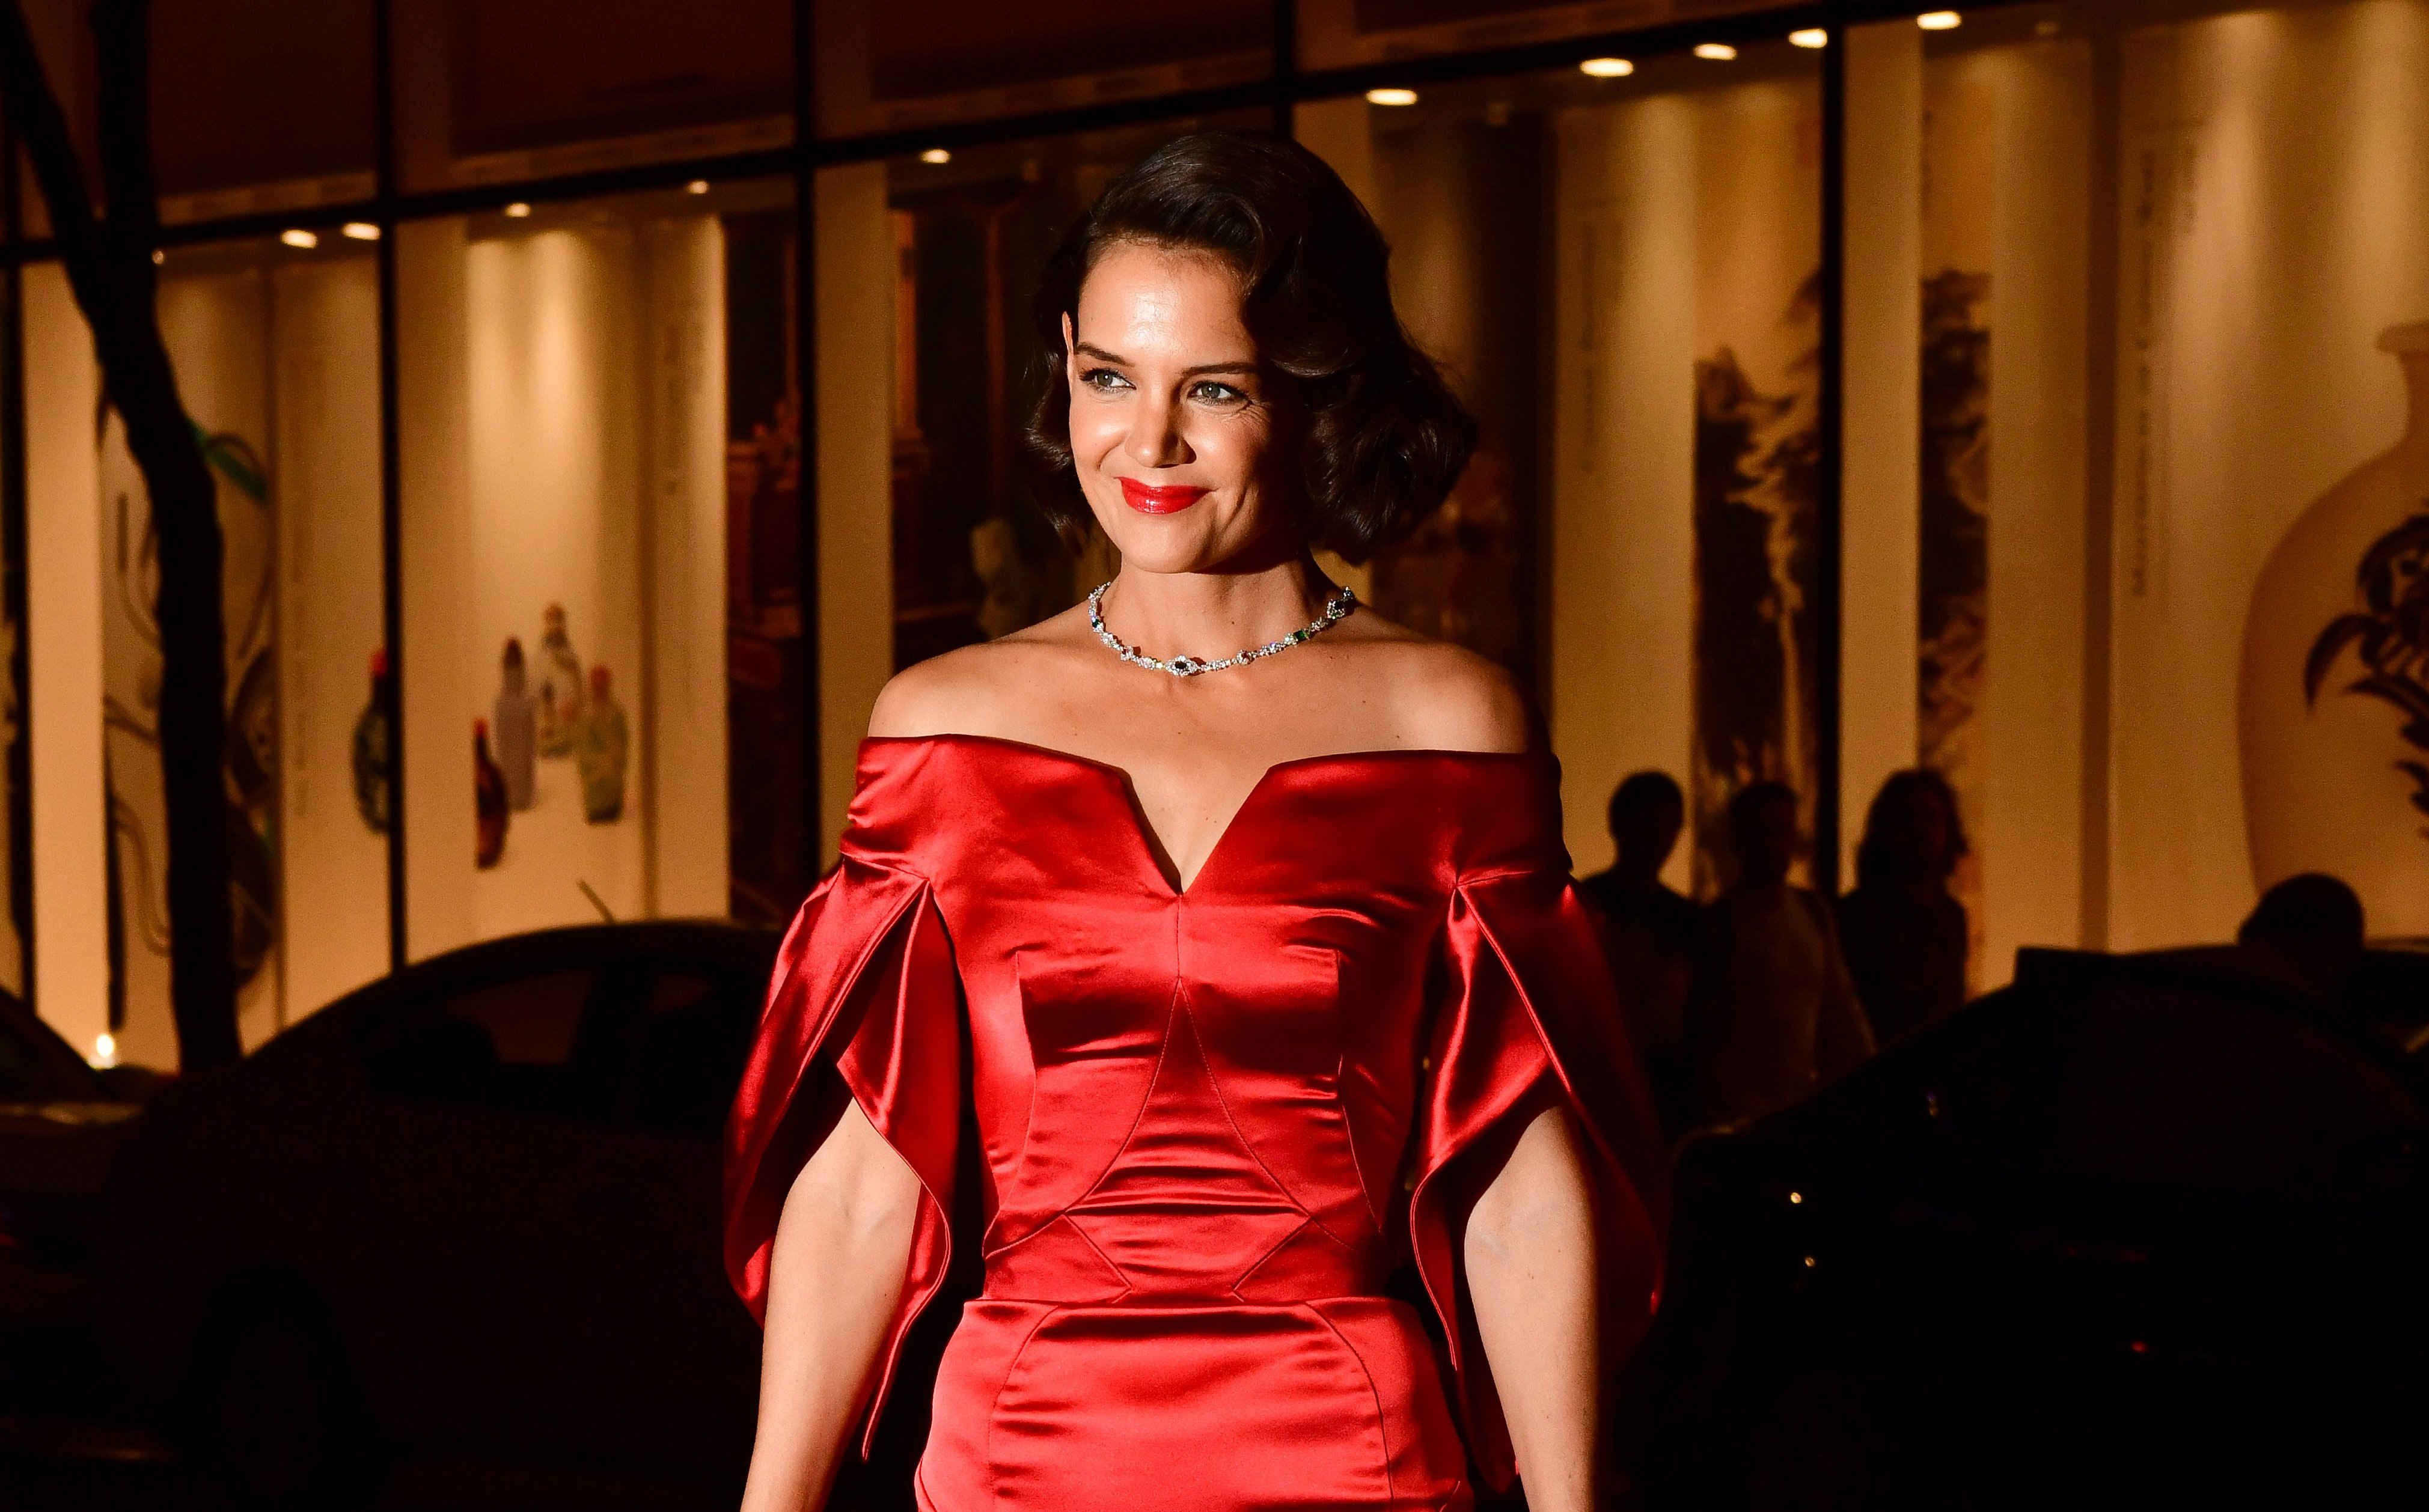 Katie Holmes arrives at the Rainbow Room on September 20, 2018 in New York City | Photo: Getty Images